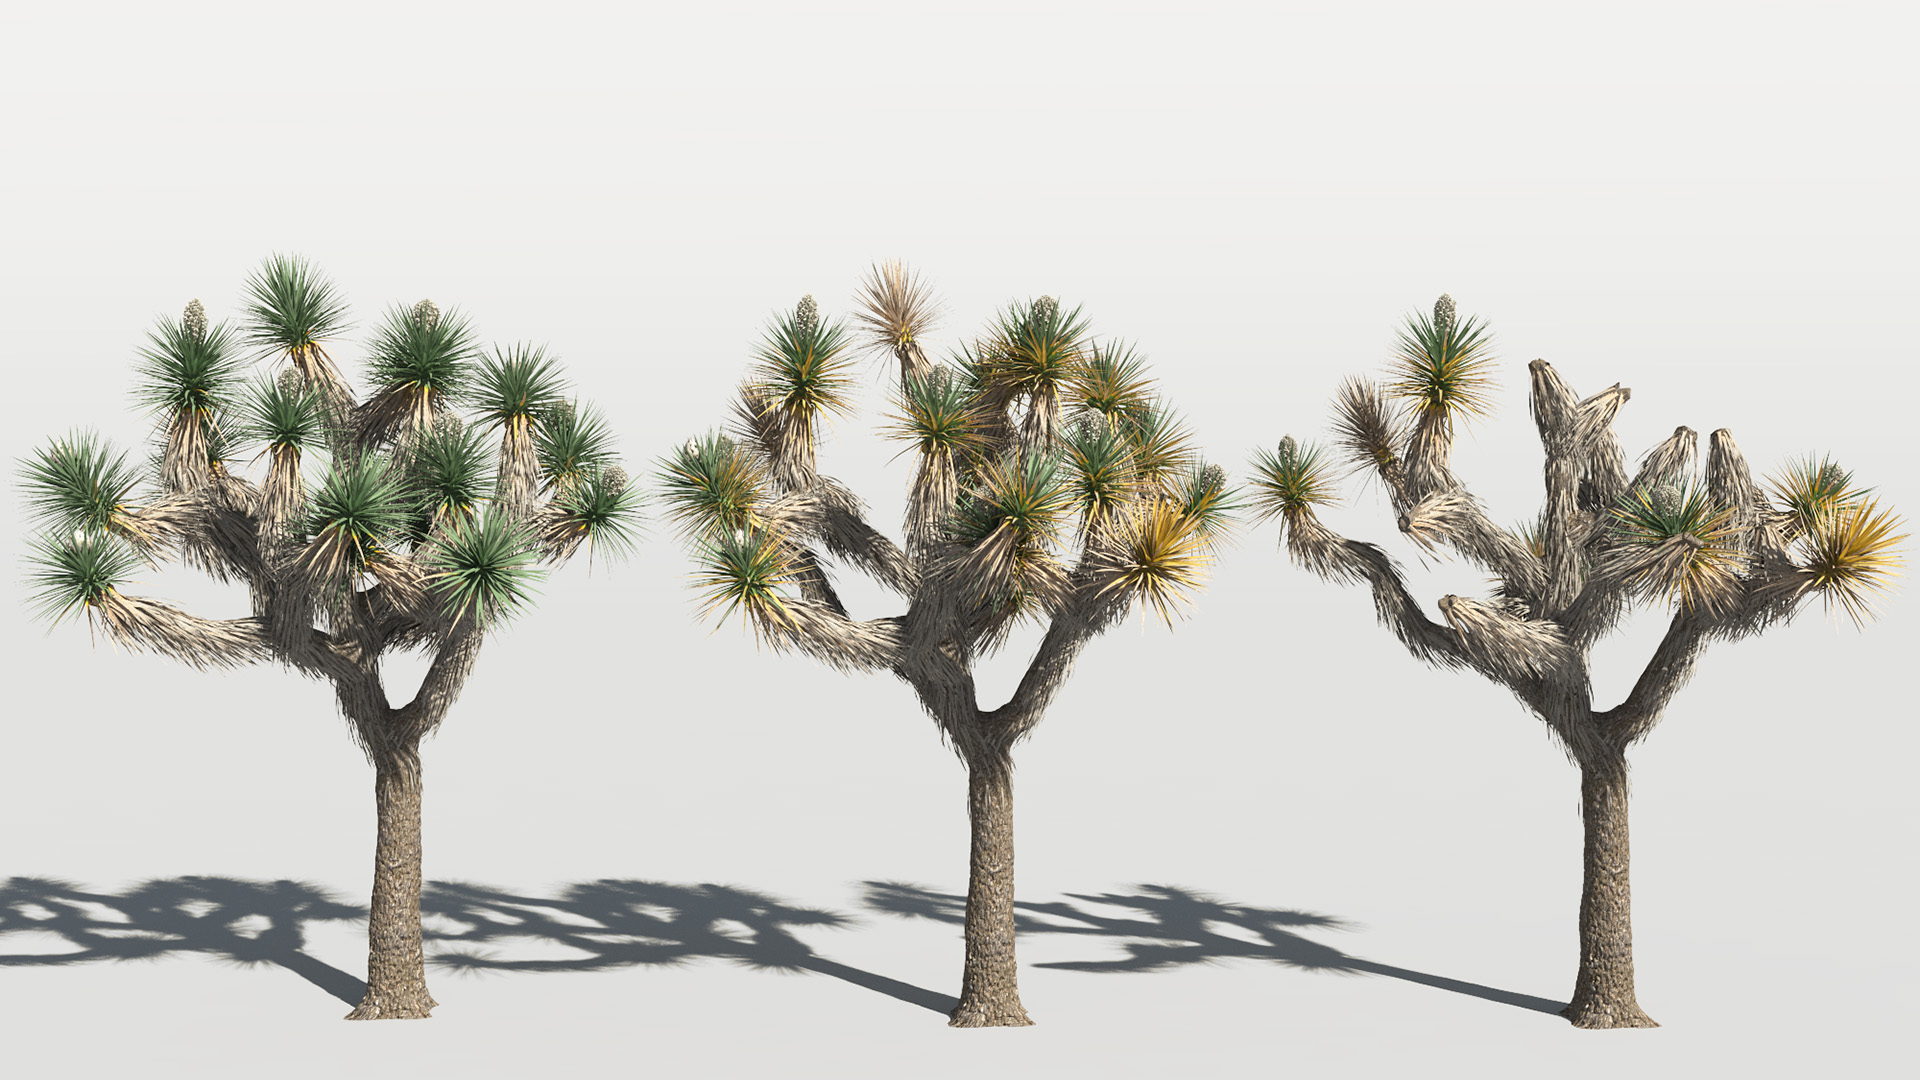 3D model of the Joshua tree Yucca brevifolia health variations